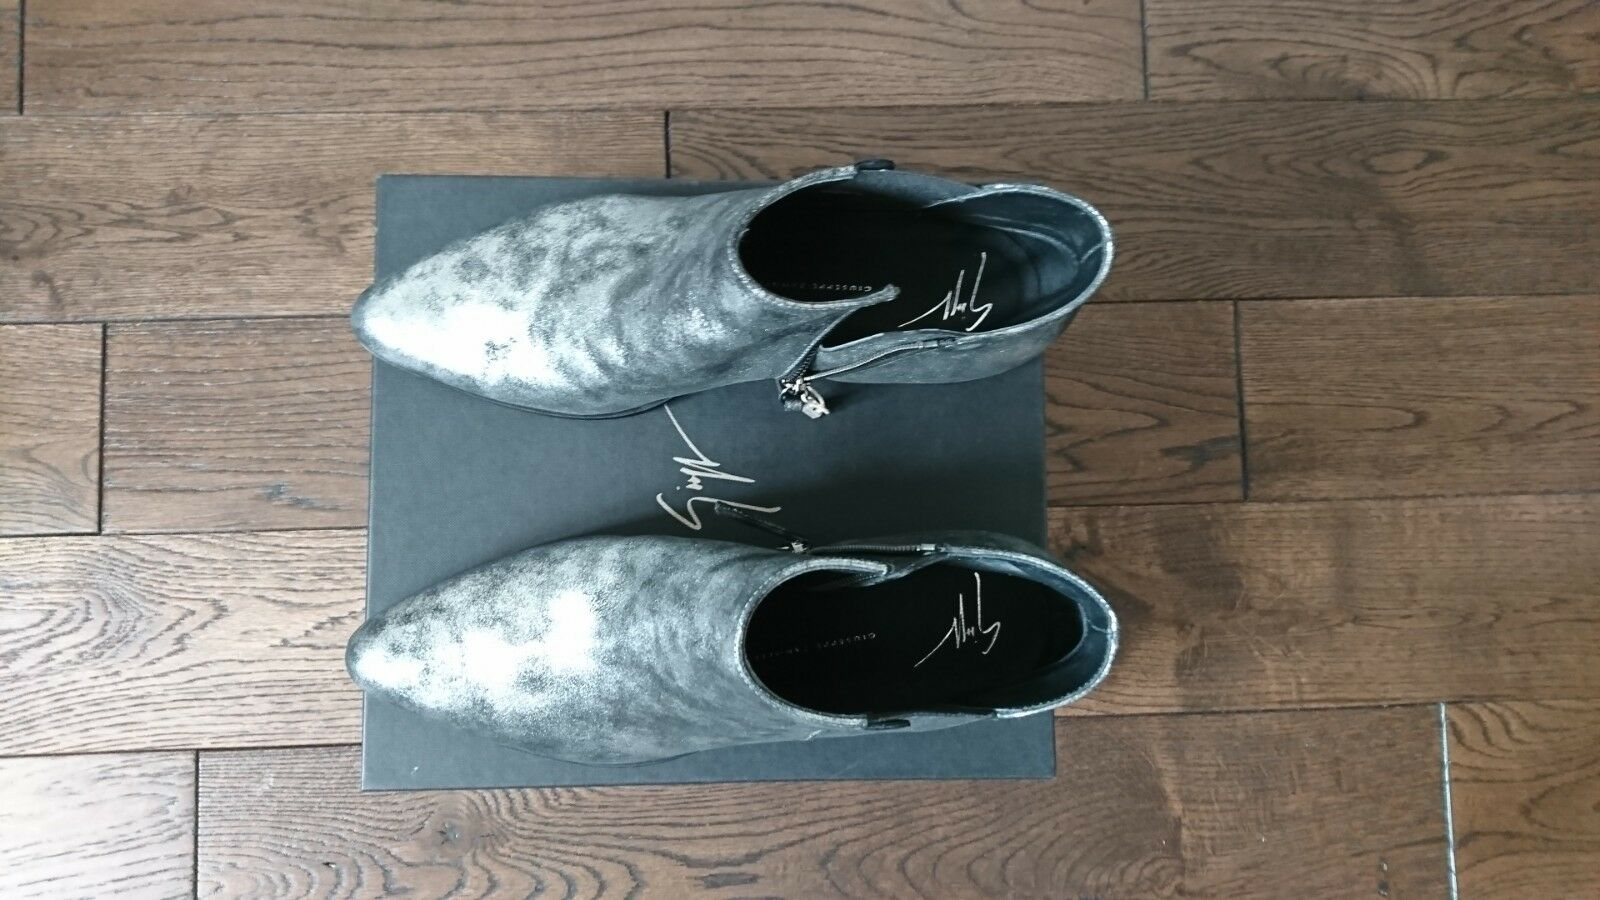 GIUSEPPE GIUSEPPE GIUSEPPE ZANOTTI plata Metallic Italian Nubuc Leather Daddy Ankle bota IT 40.5 fb607e